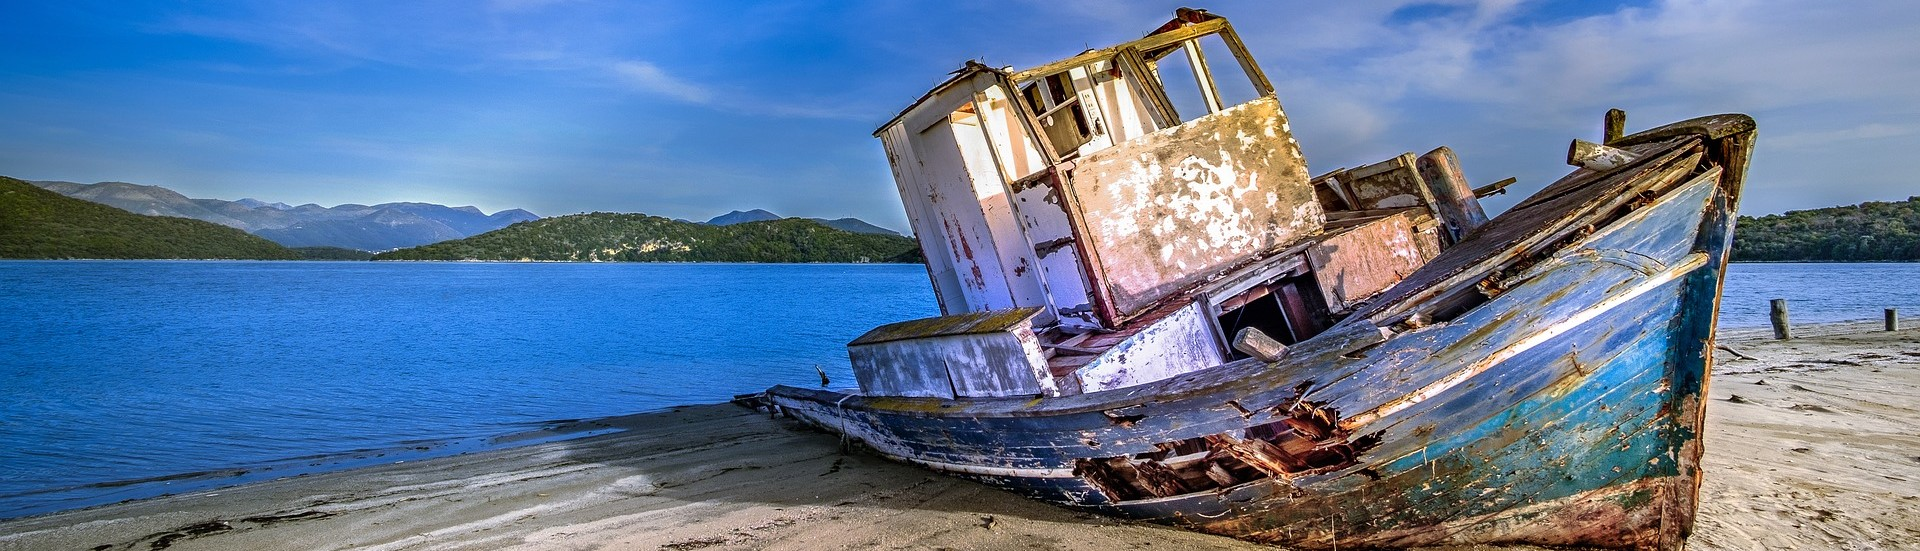 Old Abandoned Boat - GWCars.org